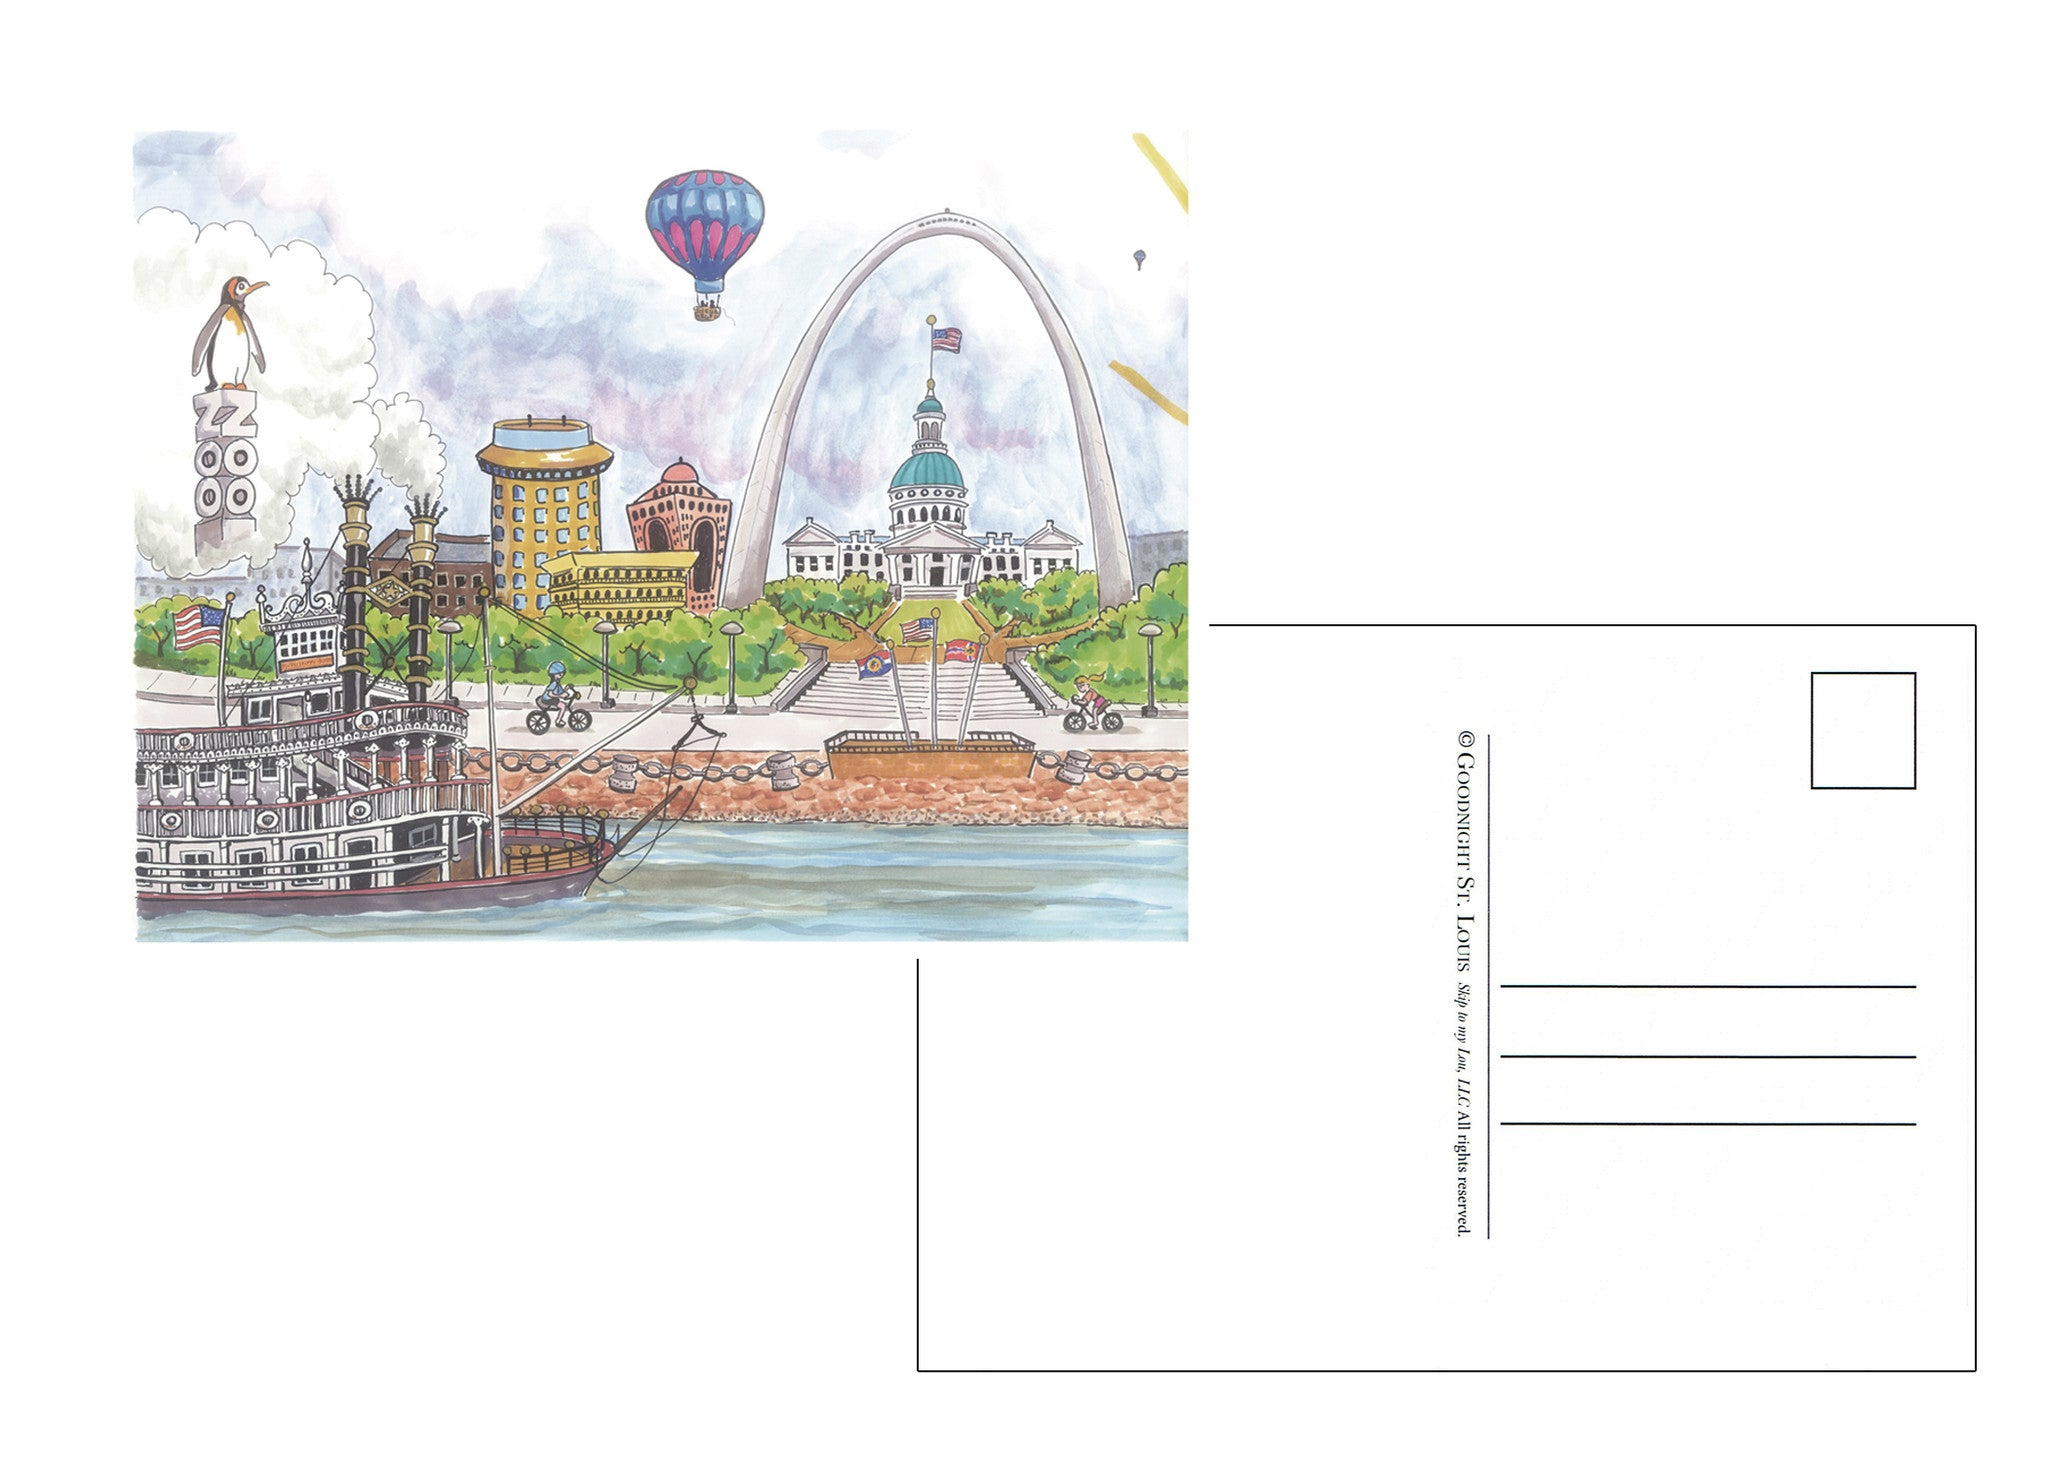 Goodnight St. Louis<br>Postcards<br><br>Available Online and<br>at Retailers